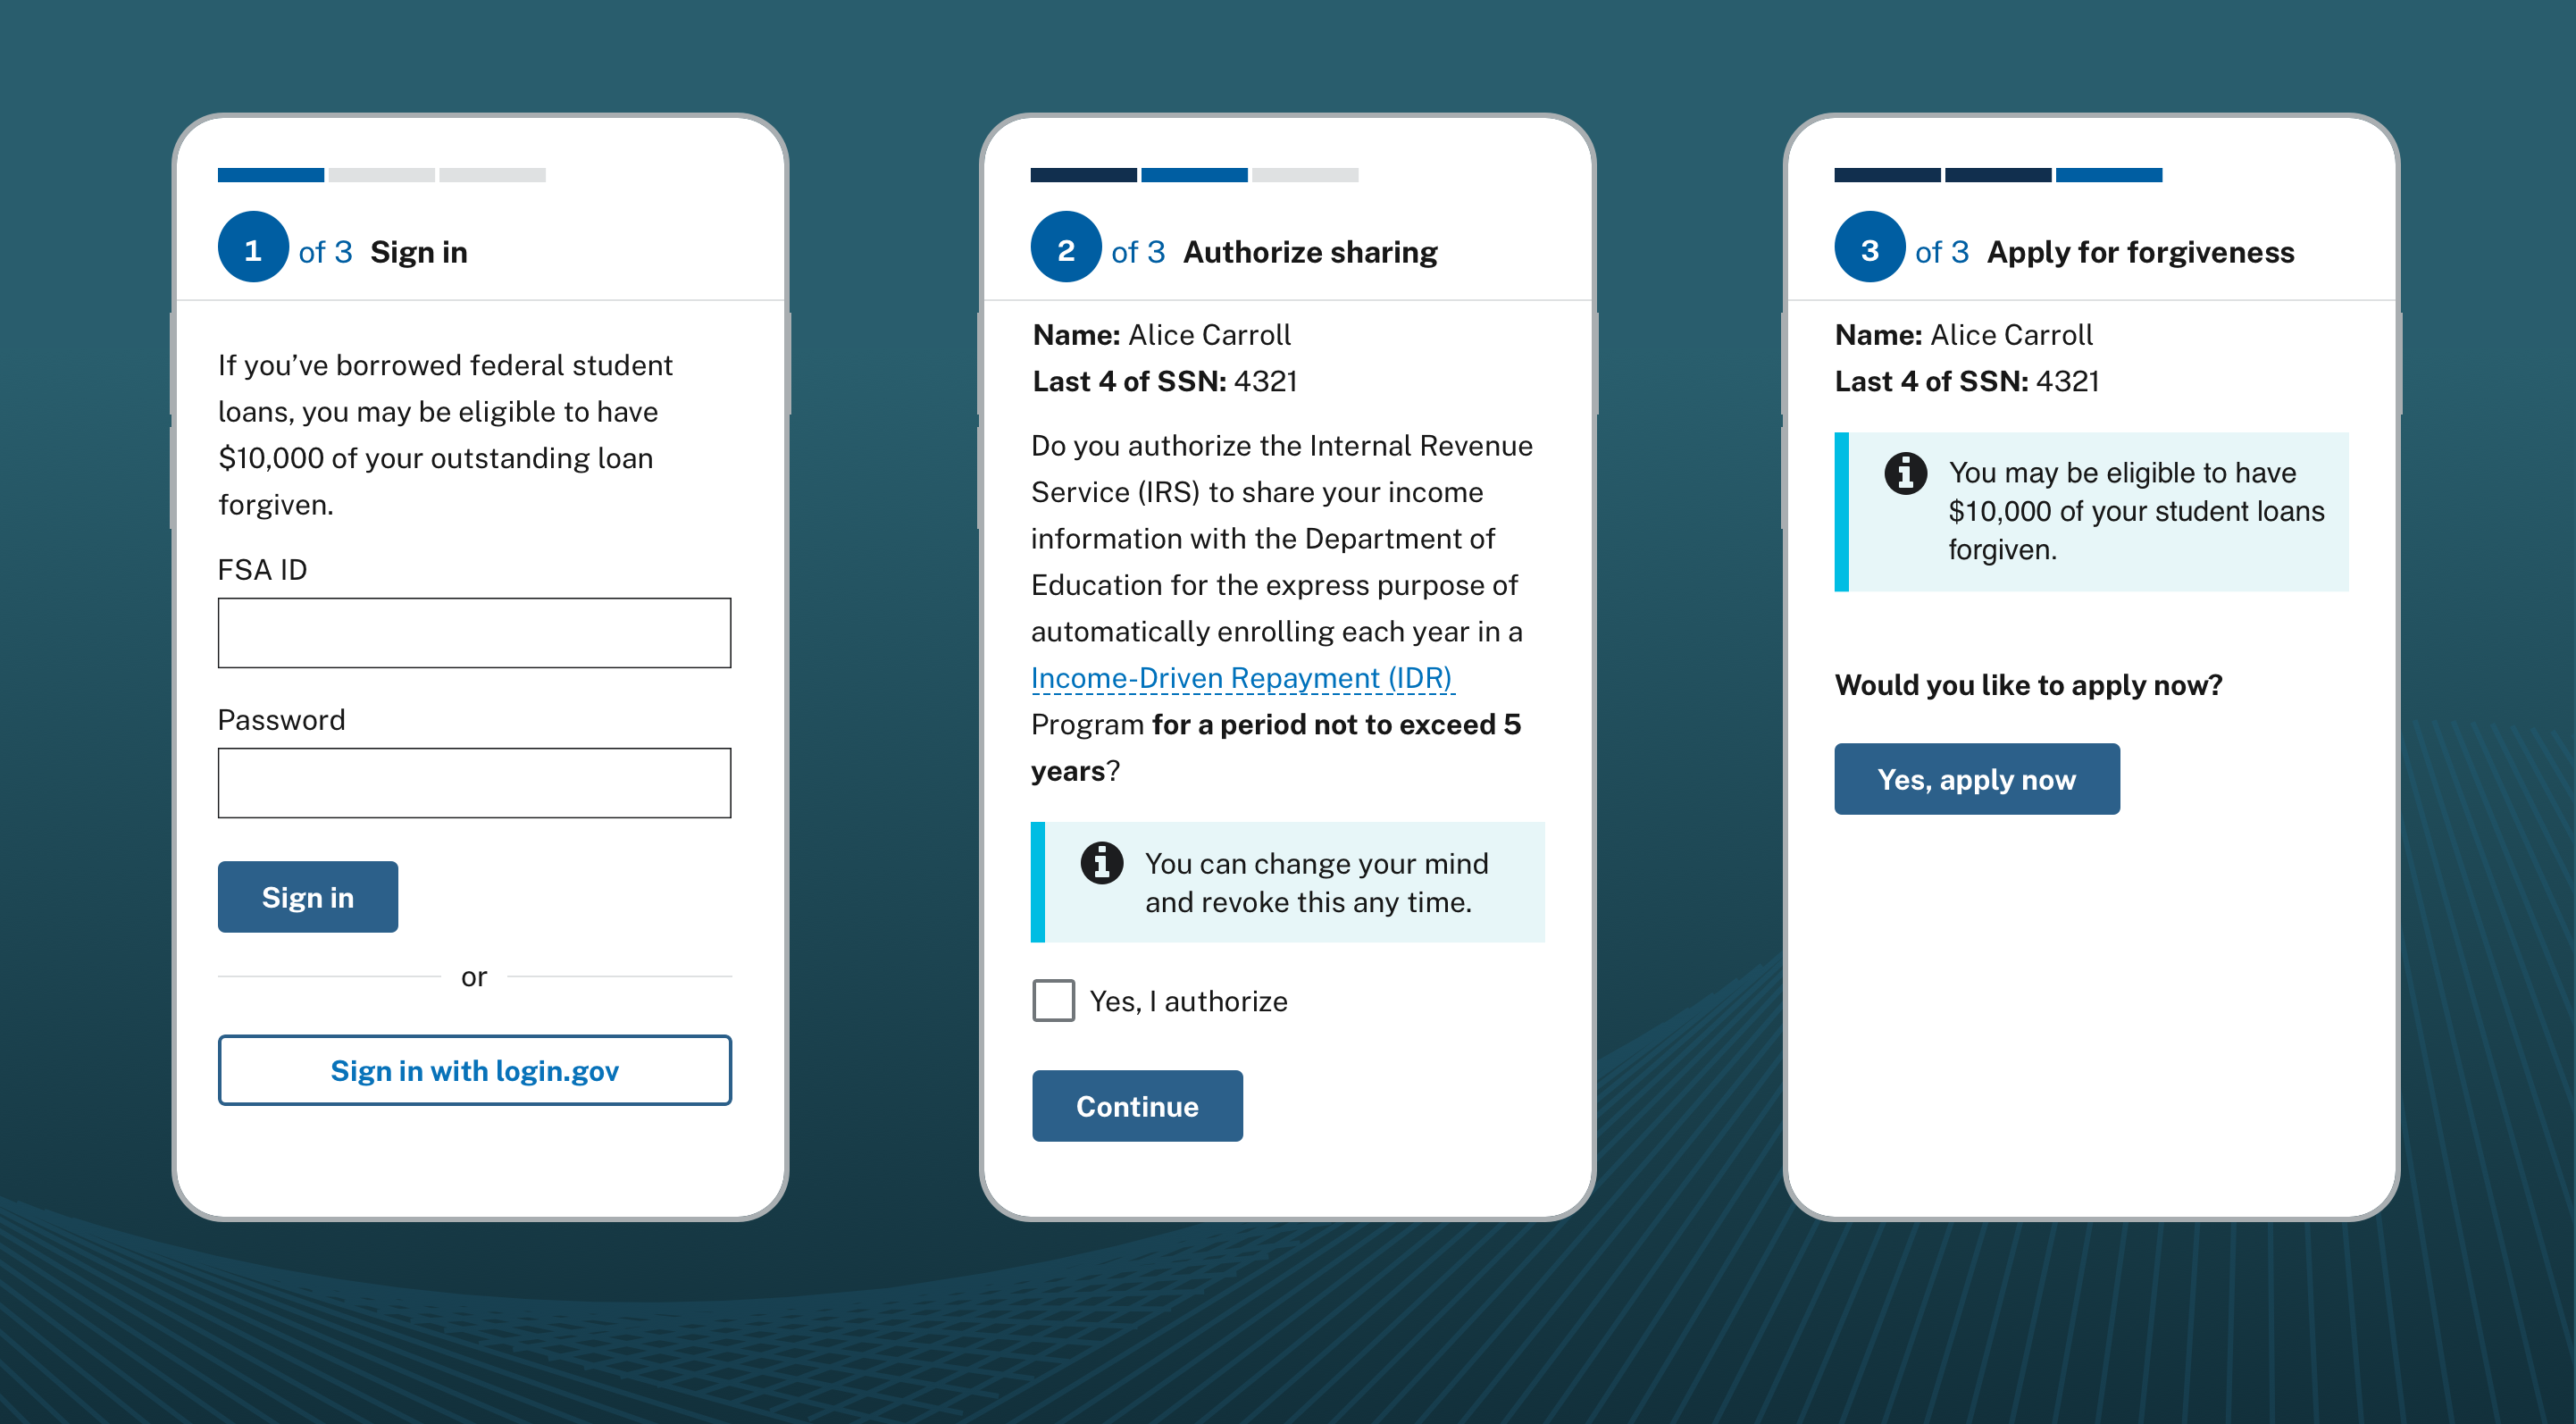 An image of 3 mobile screens representing a three-step process. The first screen has a sign in form. The second screen has information about IDR plans and a checkbox. The last screen has a single button to submit a combined student loan forgiveness and IDR application.